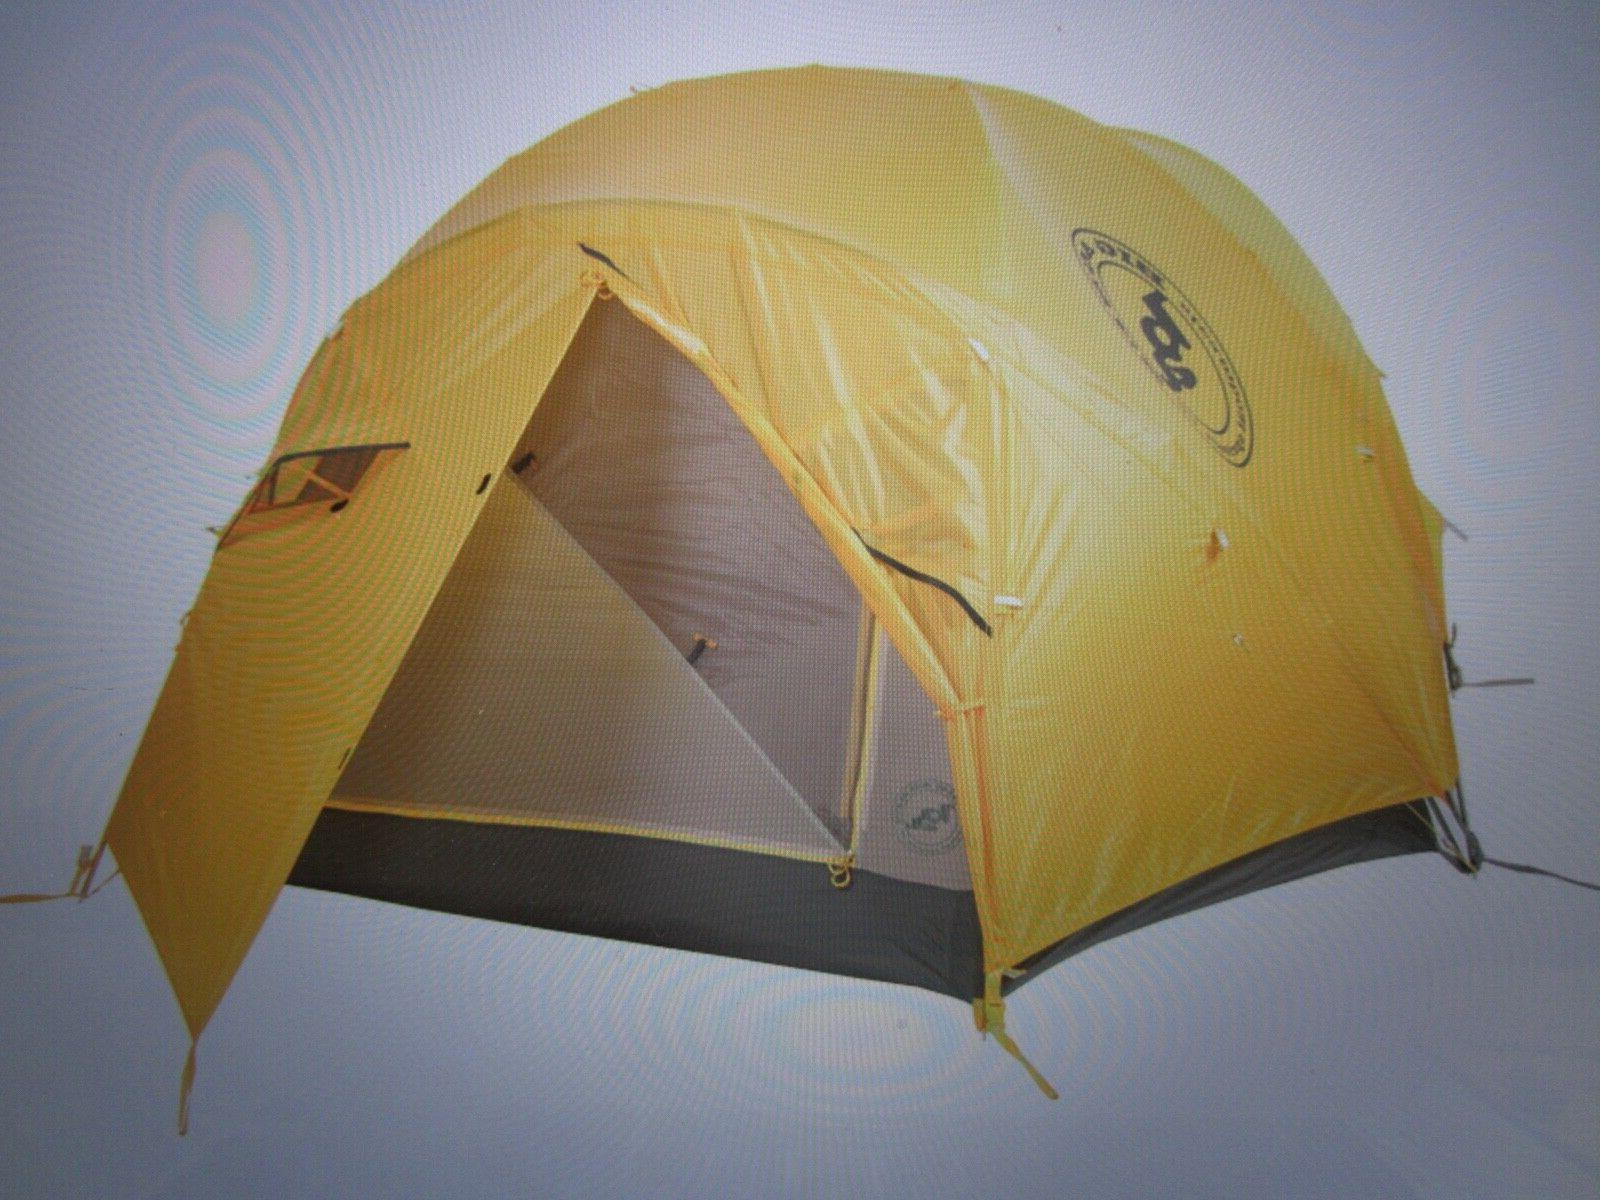 battle mountain 2 tent new with tags